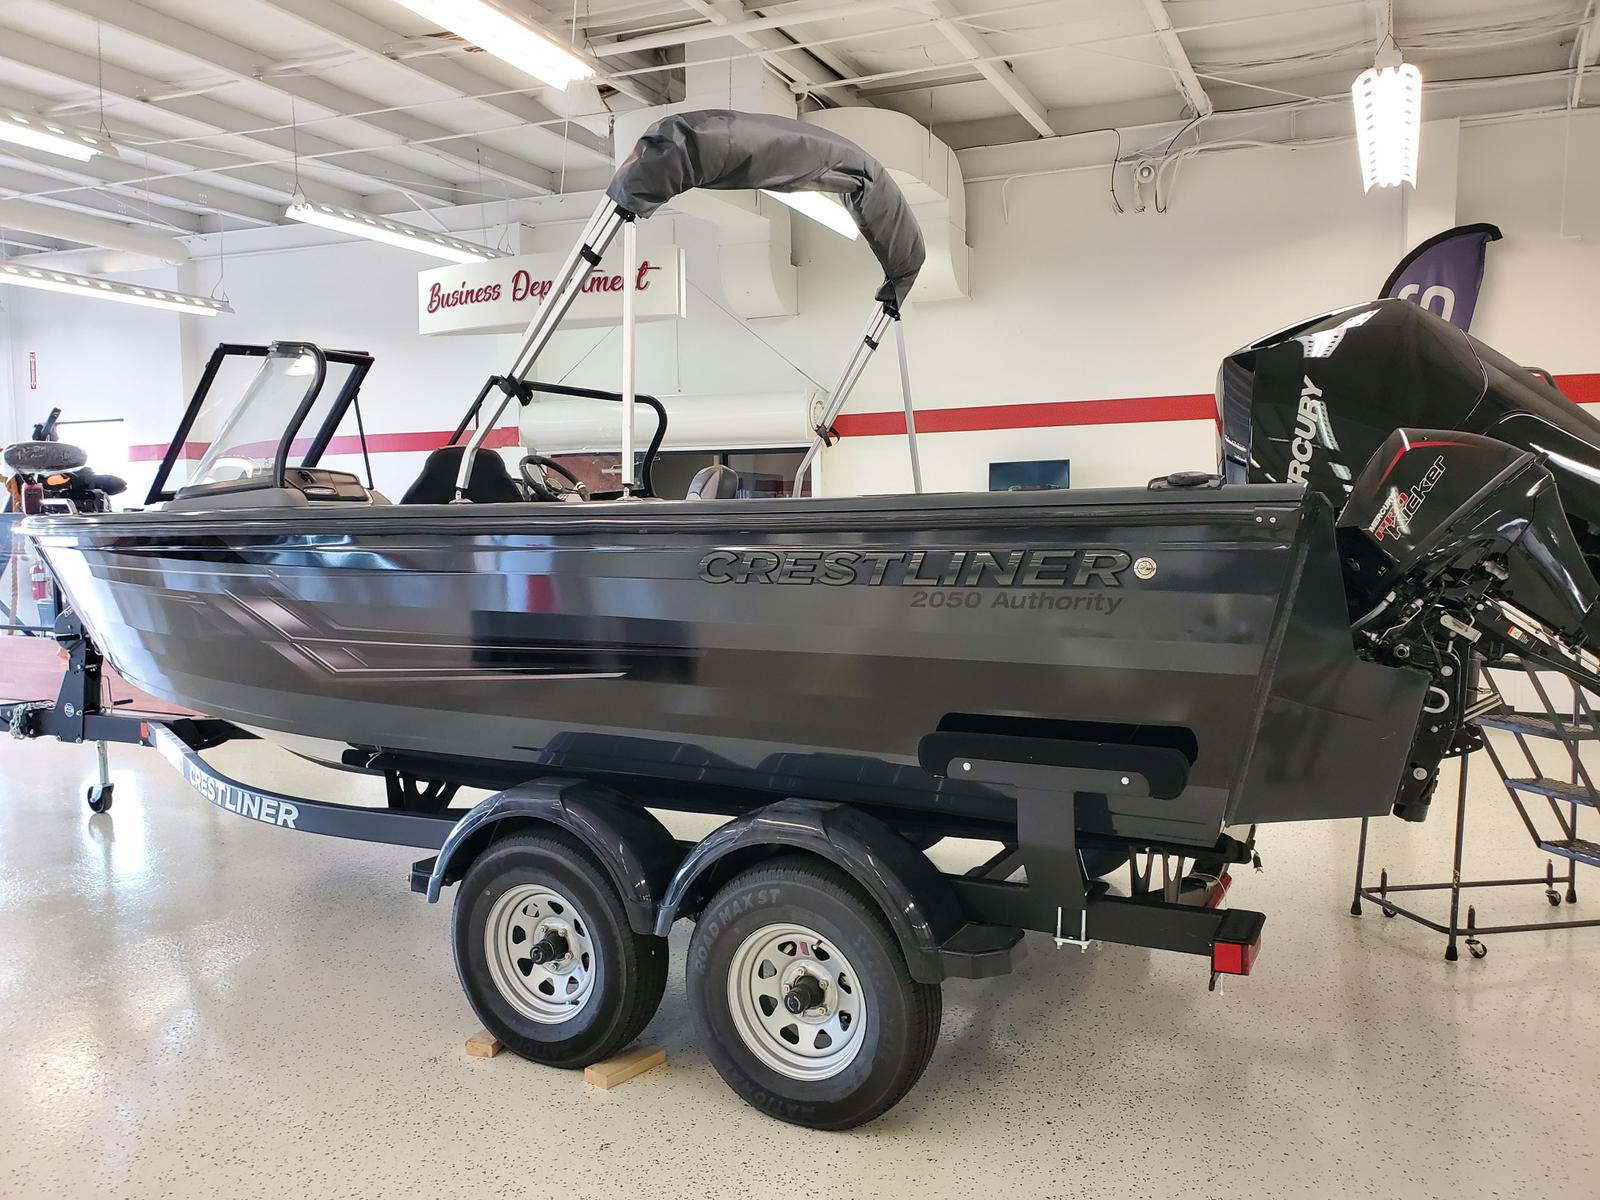 2021 Crestliner boat for sale, model of the boat is 2050 Authority & Image # 1 of 11